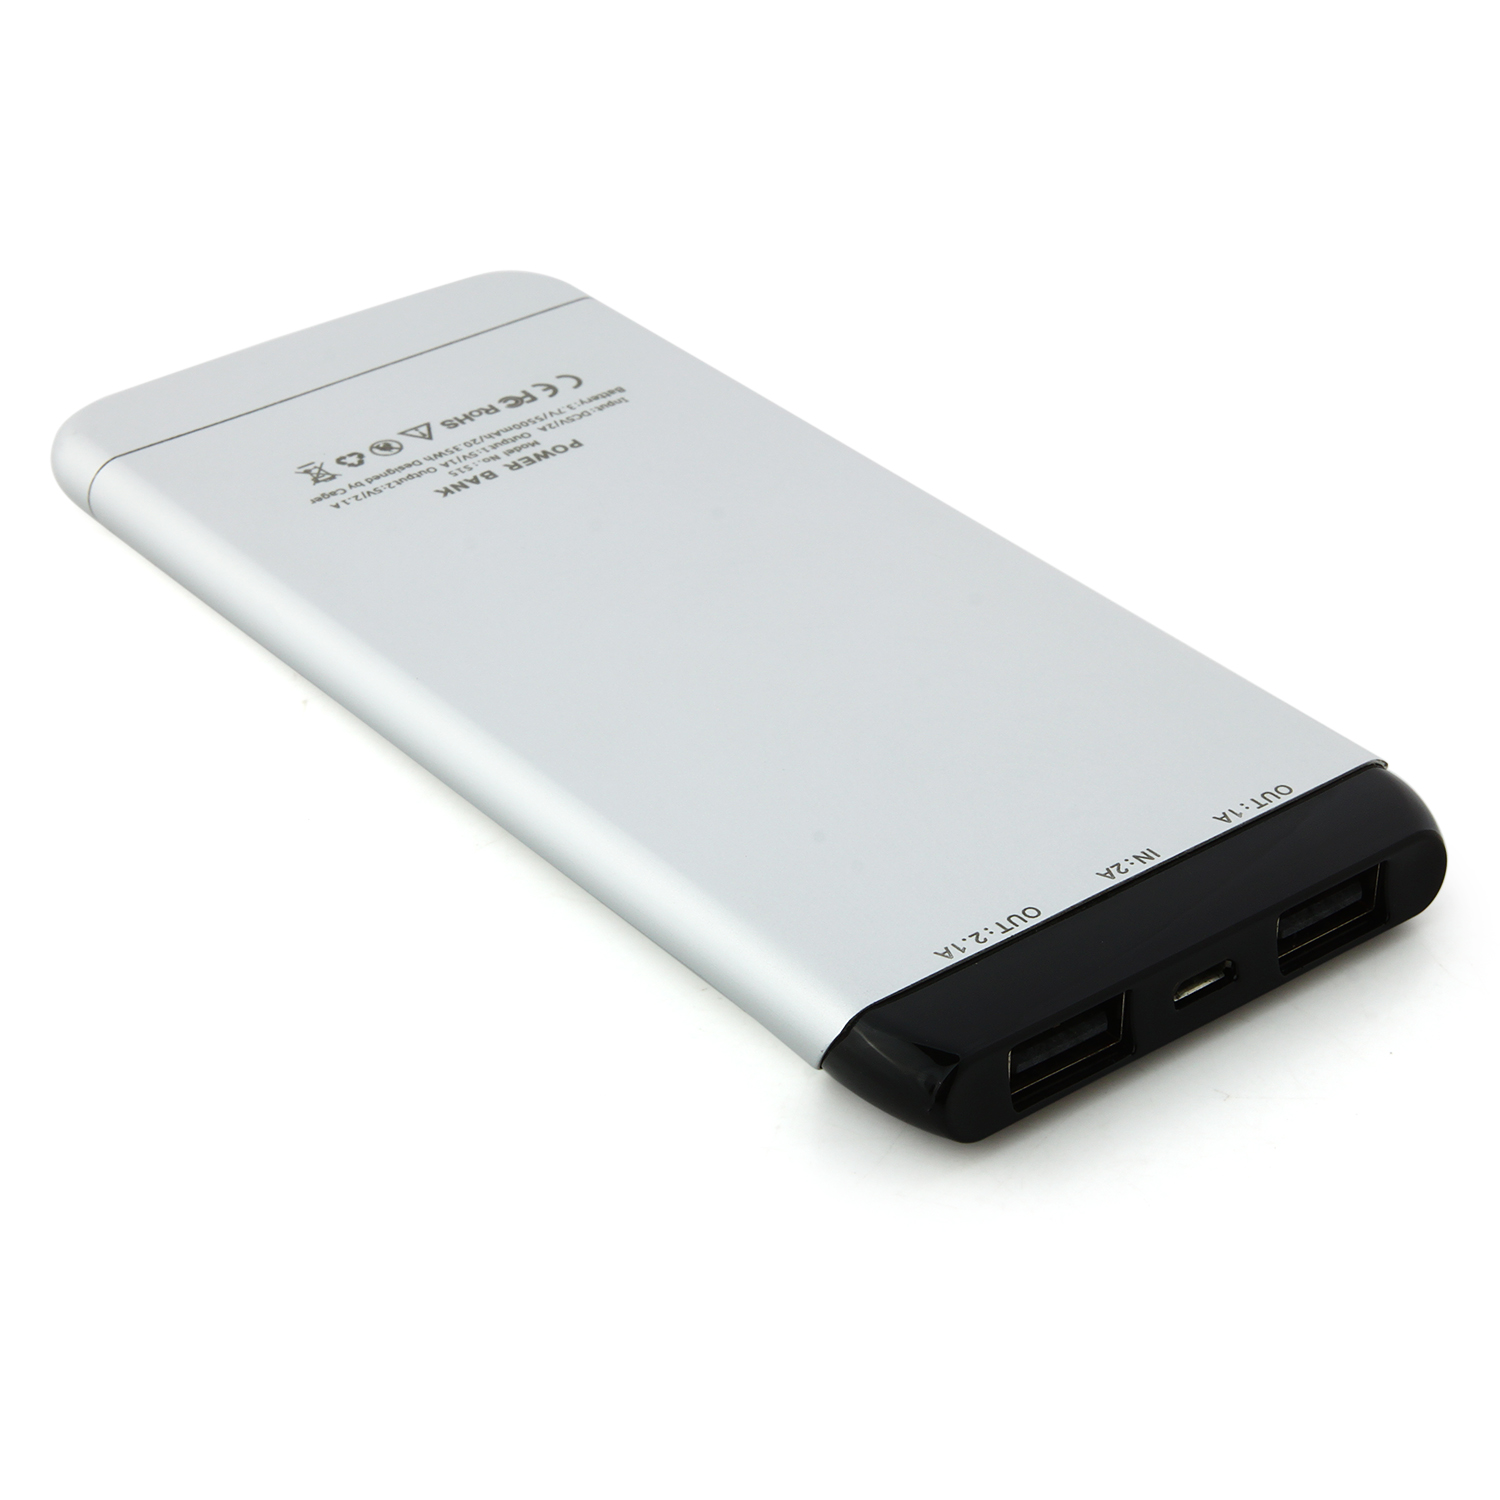 Cager S15 5500mAh Ultrathin Double USB Power Bank for Smartphones Tablet PC White